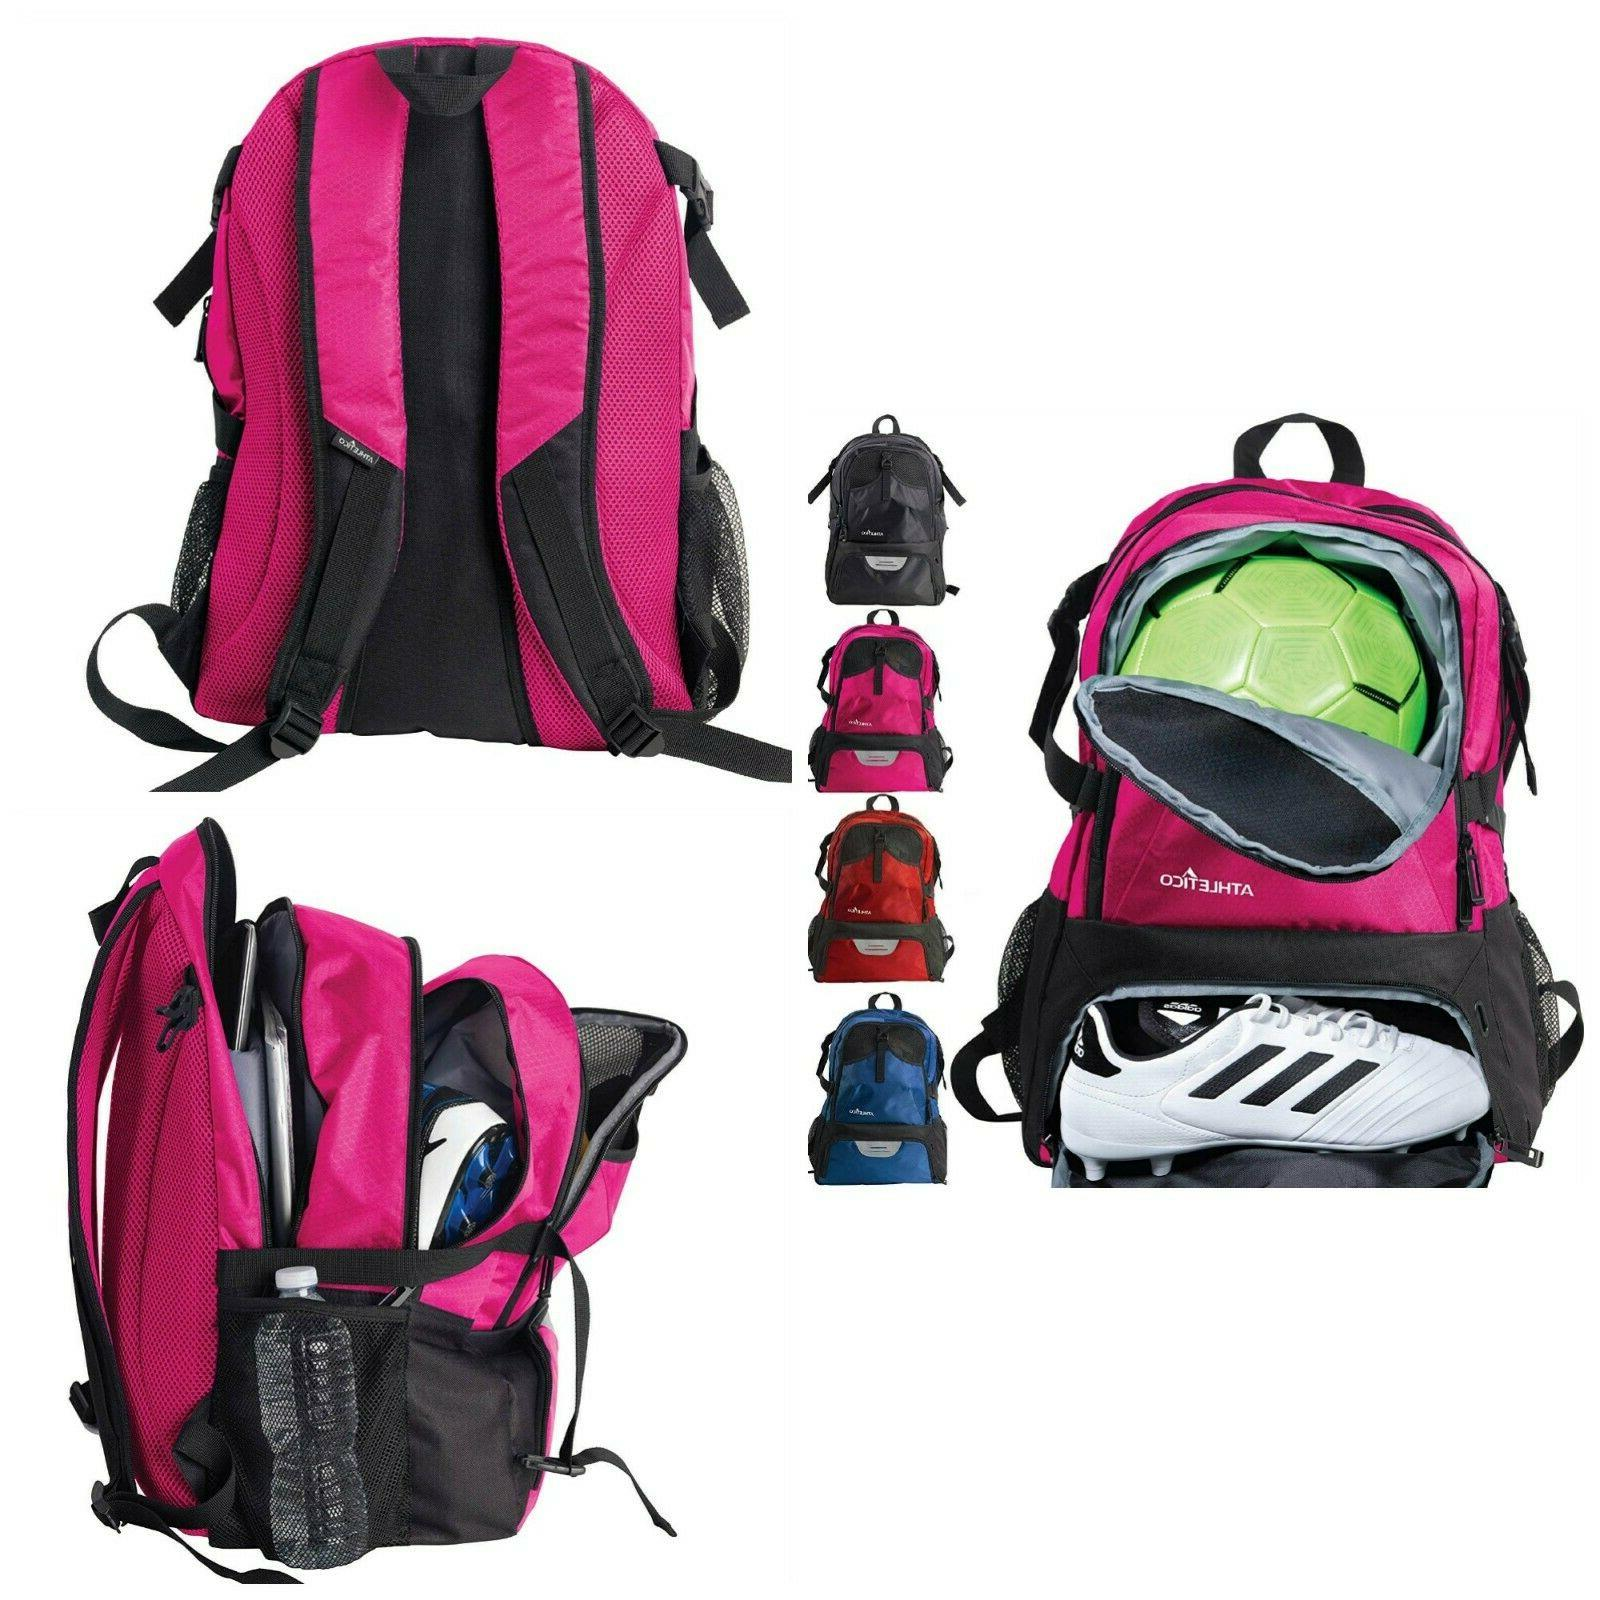 Soccer Ball Backpack Adjustable Straps Accessories Organizer